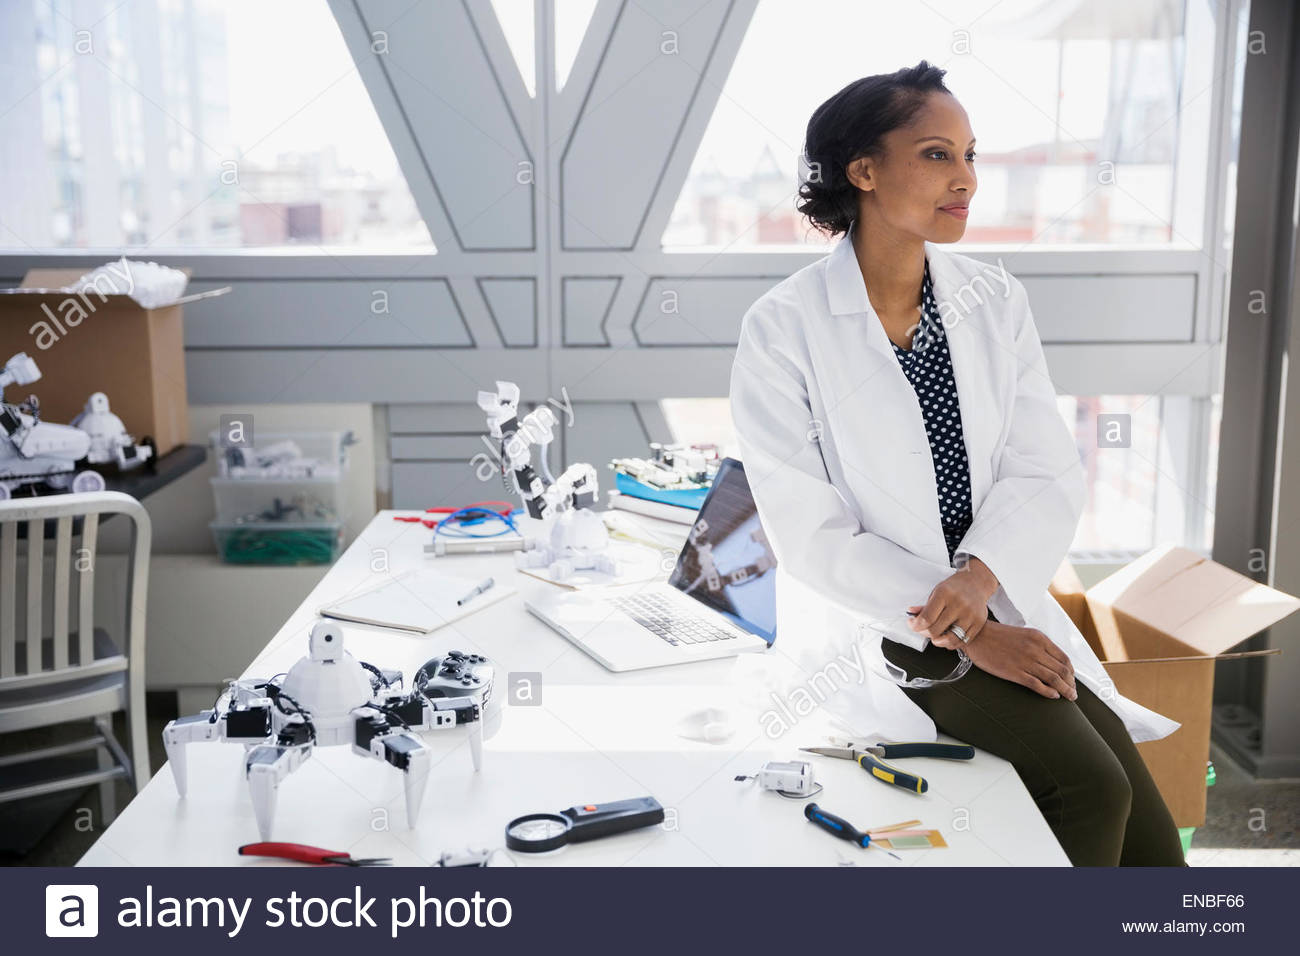 Pensive engineer at desk with robots - Stock Image